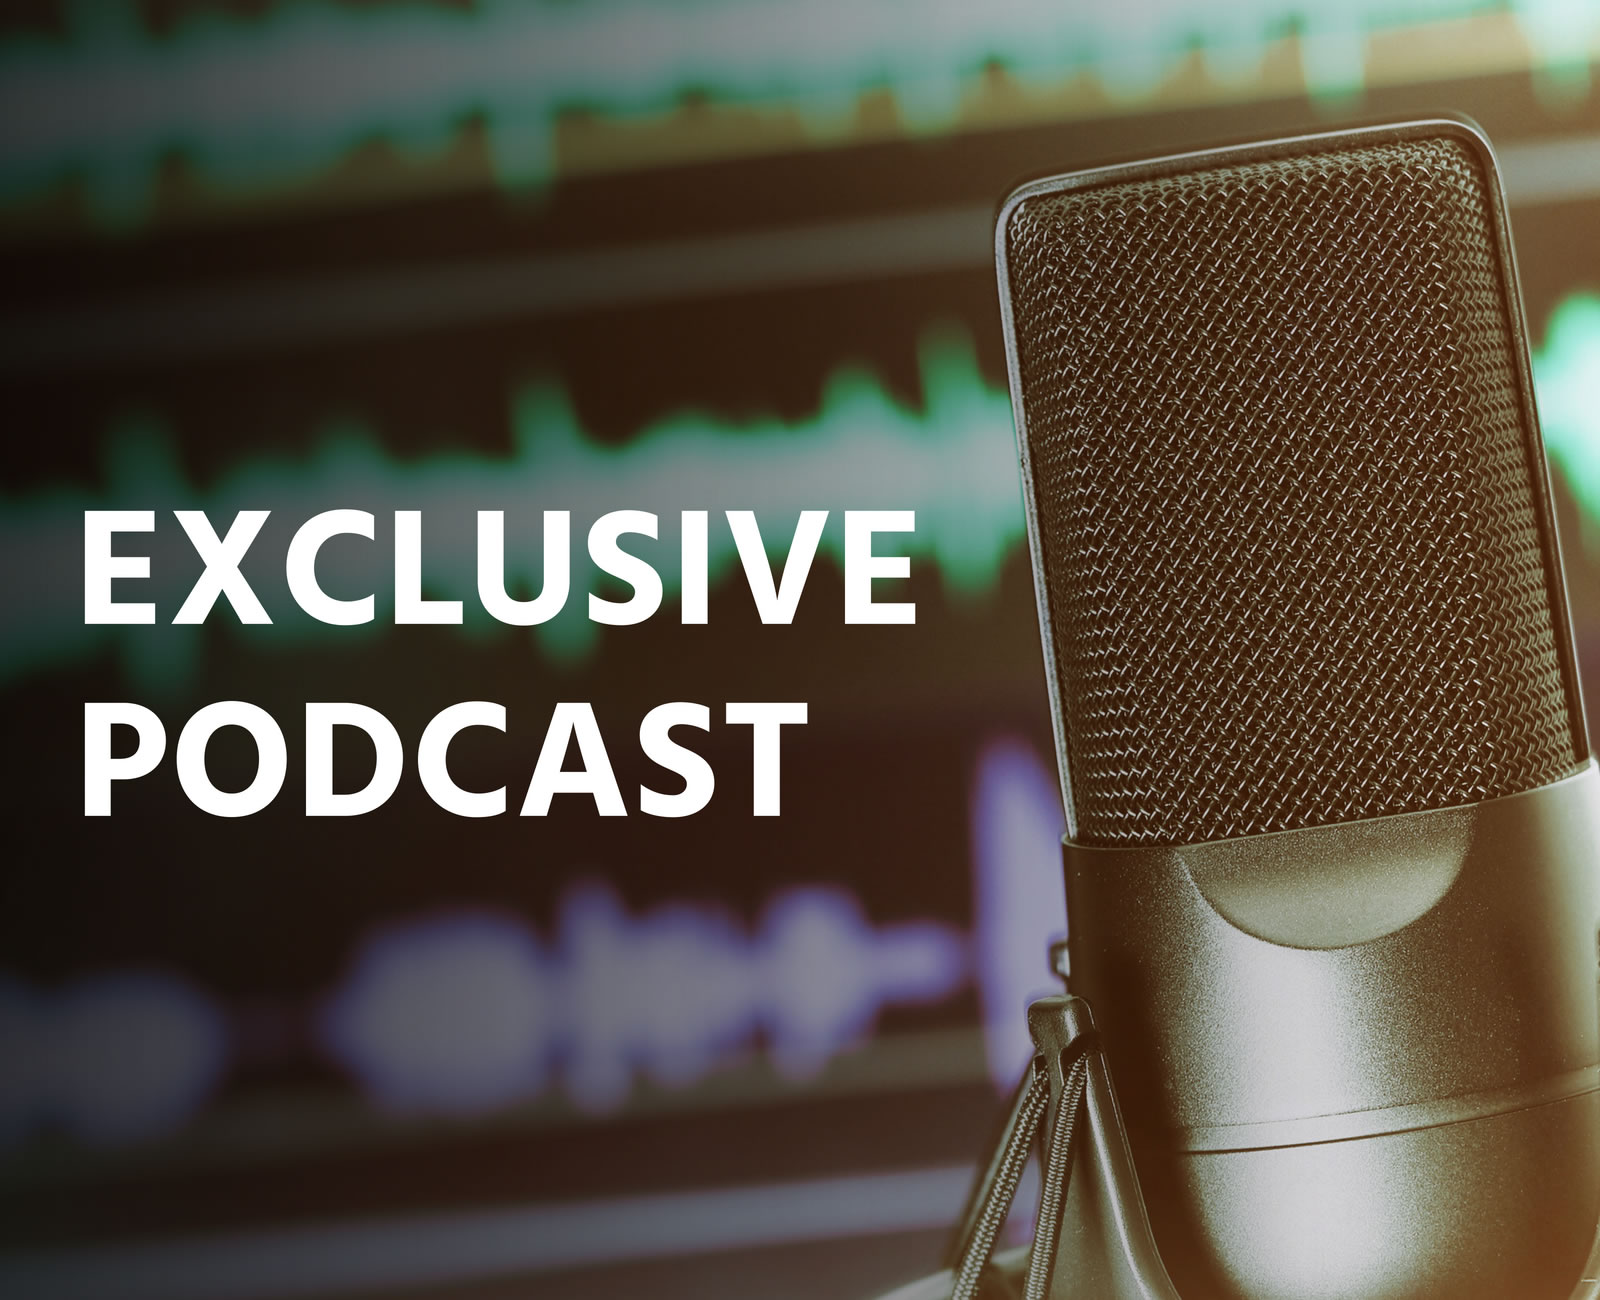 Ensuring Process Excellence During Traditional Cycles - A Podcast with Nigel Leppitt, Allianz